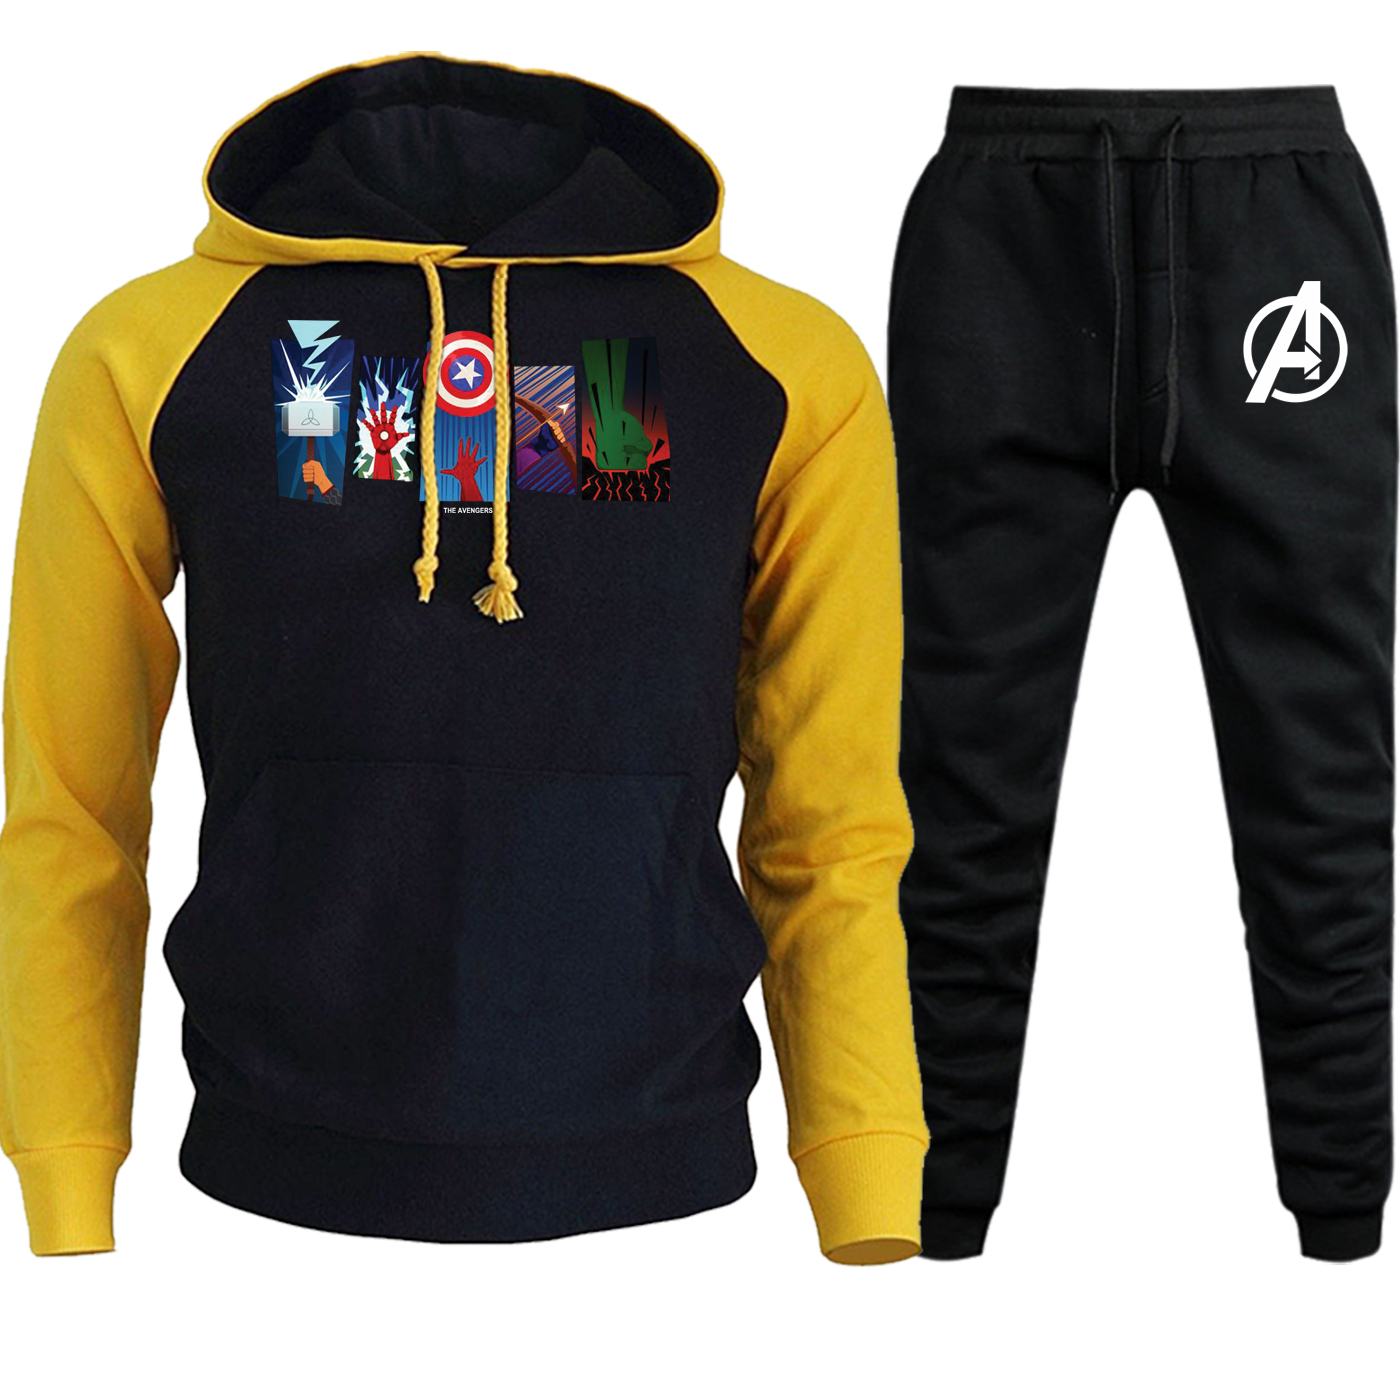 The Avengers Superhero Arms Streetwear Men Hoodie Raglan Autumn Winter 2019 Suit Casual Pullover Hip Hop Hoody+Pants 2 Piece Set